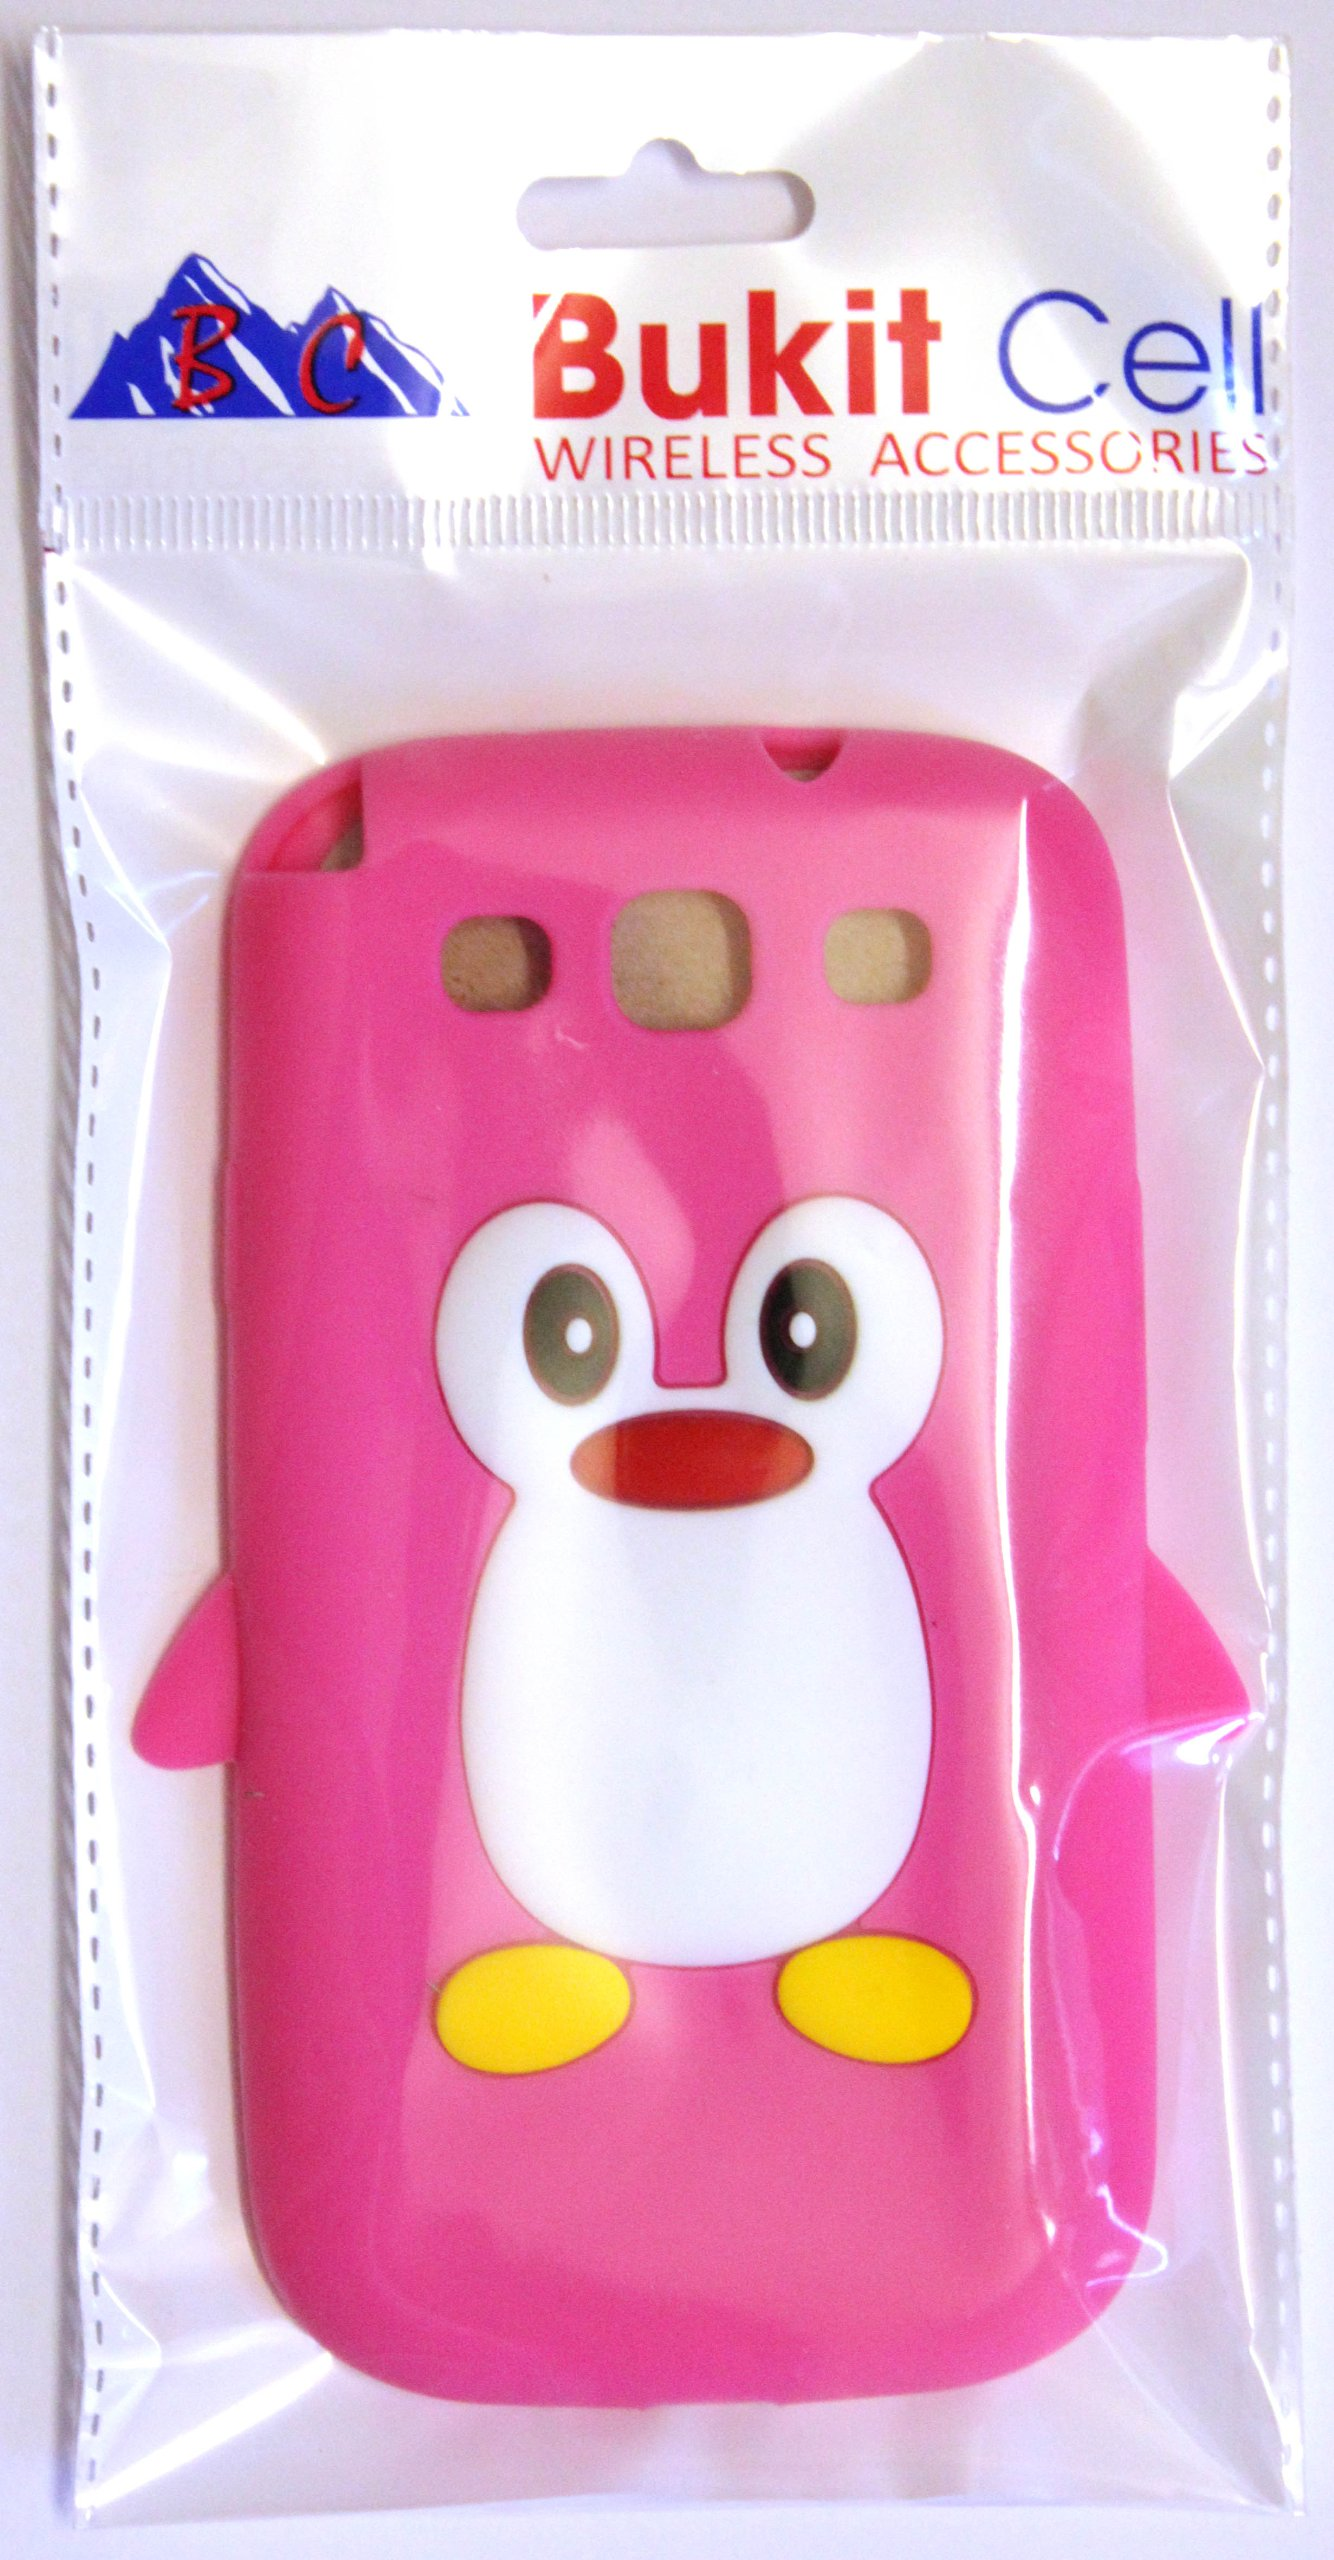 Samsung Hot Pink Penguin Silicone Case Cover with Free Custom Screen Protector, WirelessGeeks247 Metallic Detachable Touch Screen Stylus Pen and Anti Dust Plug for Samsung Galaxy S3 i9300